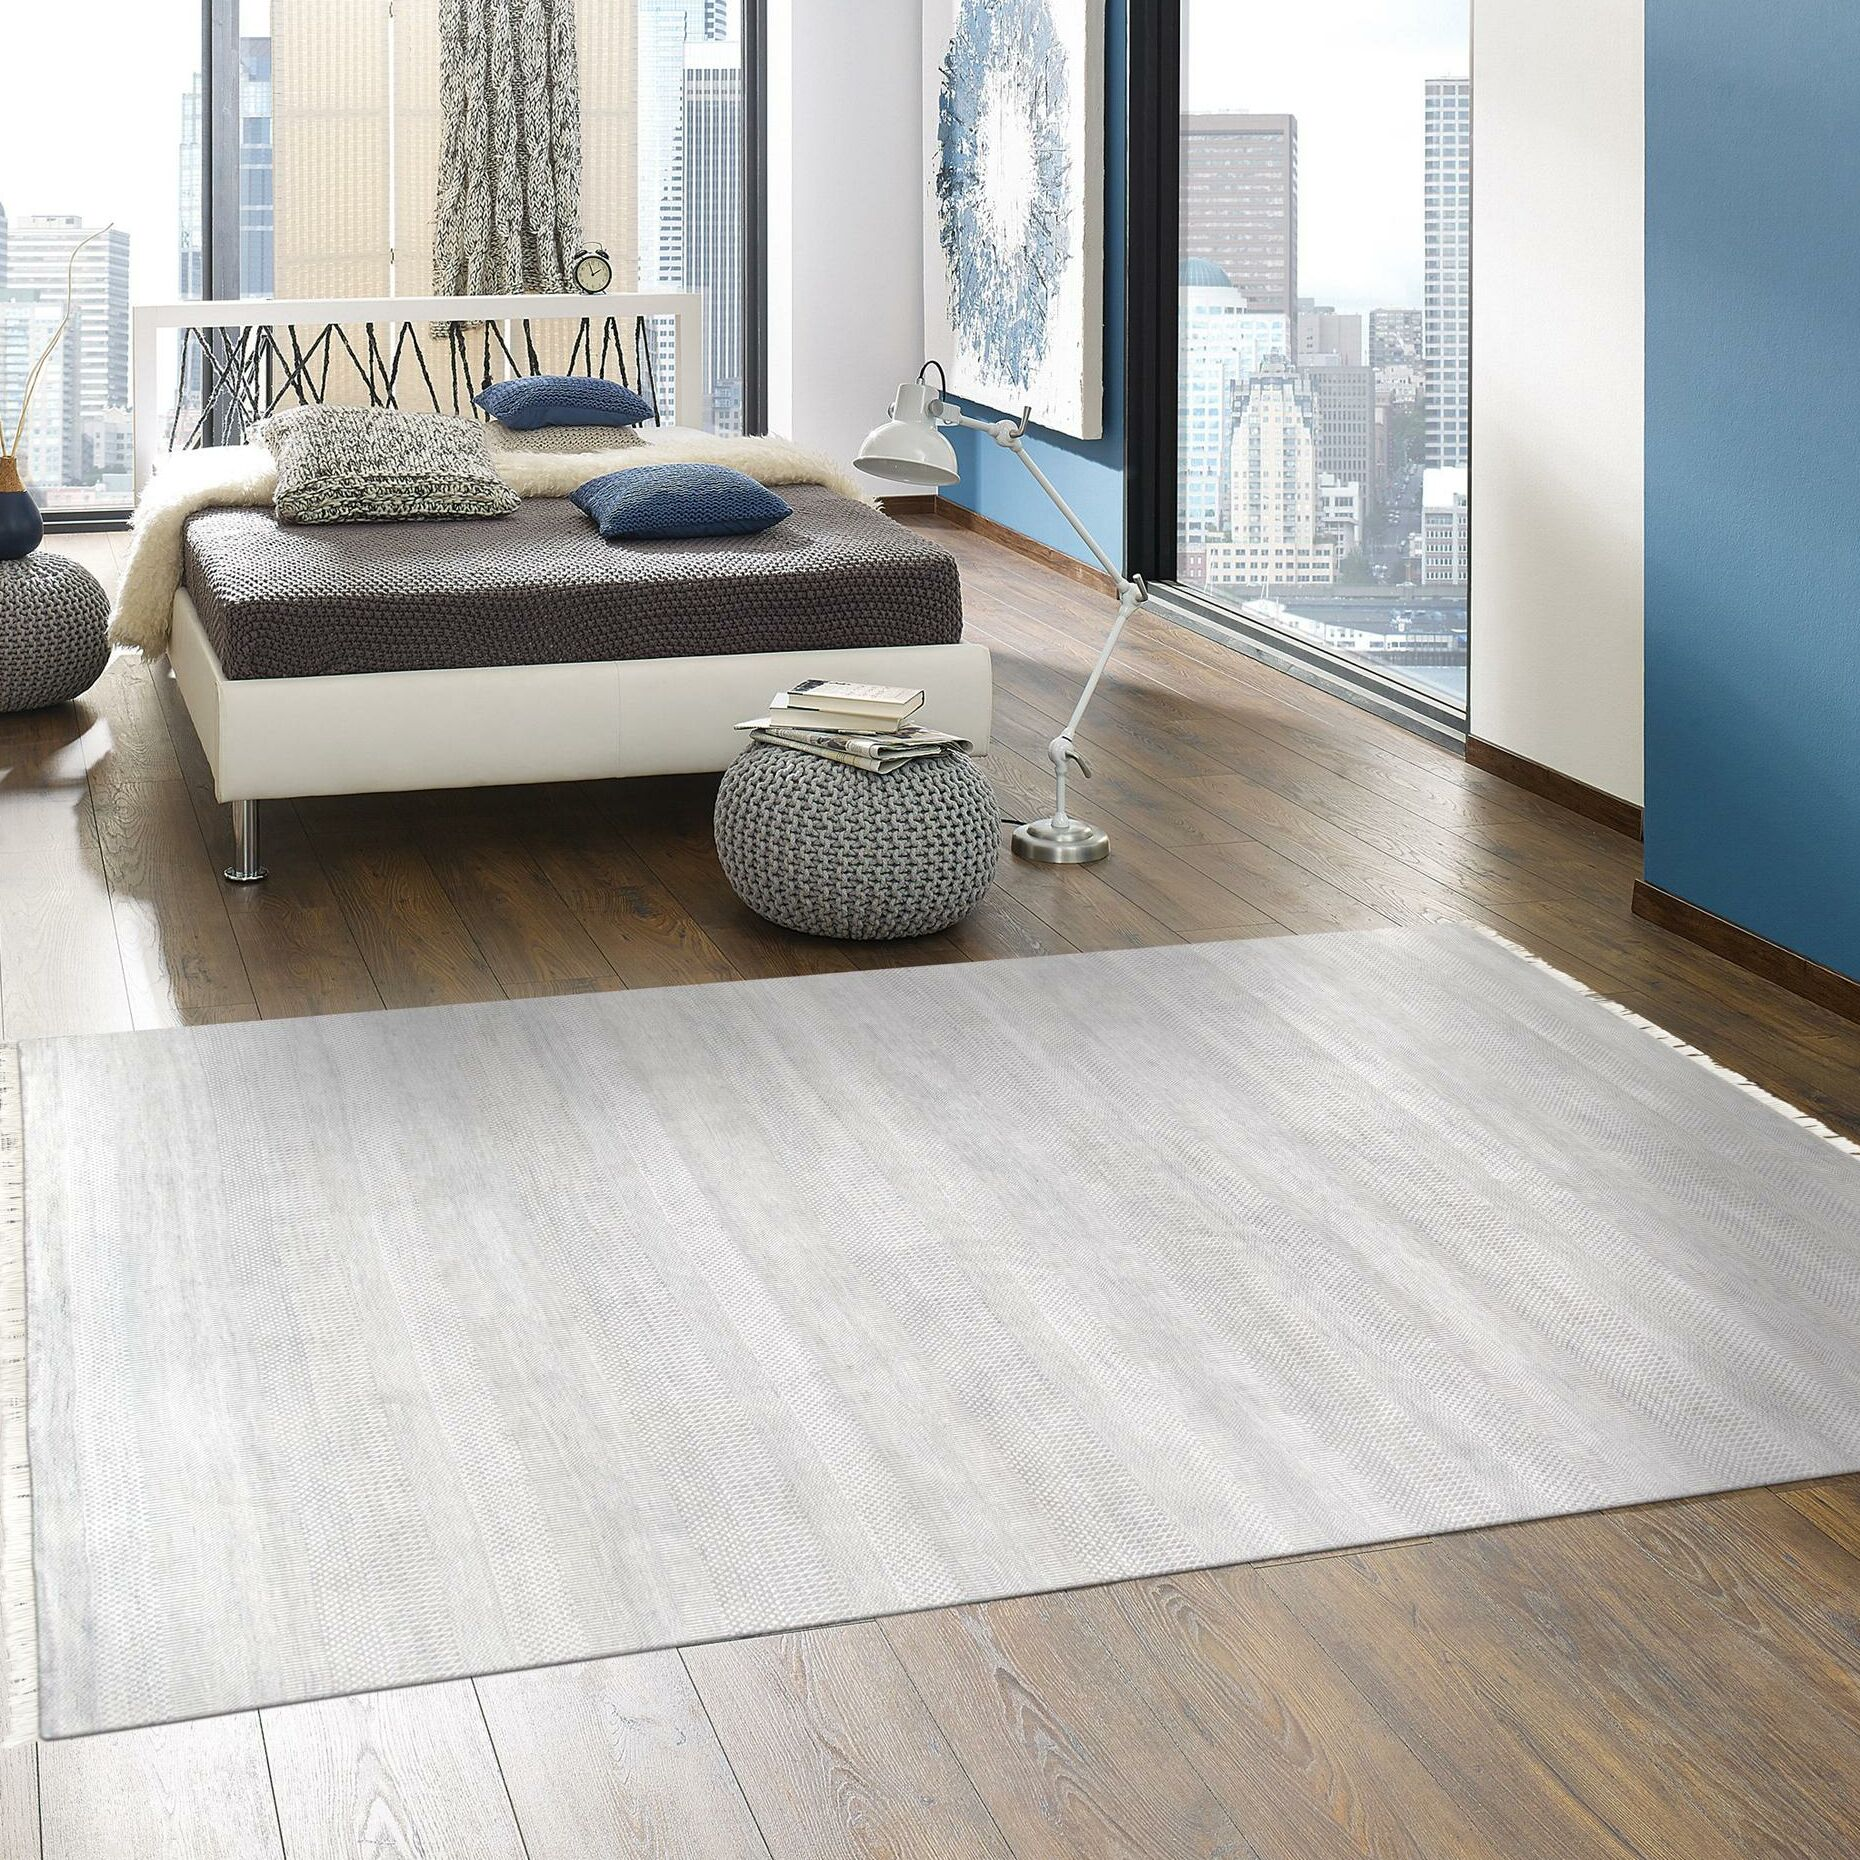 Transitional Hand-Knotted Wool/Silk Gray Area Rug